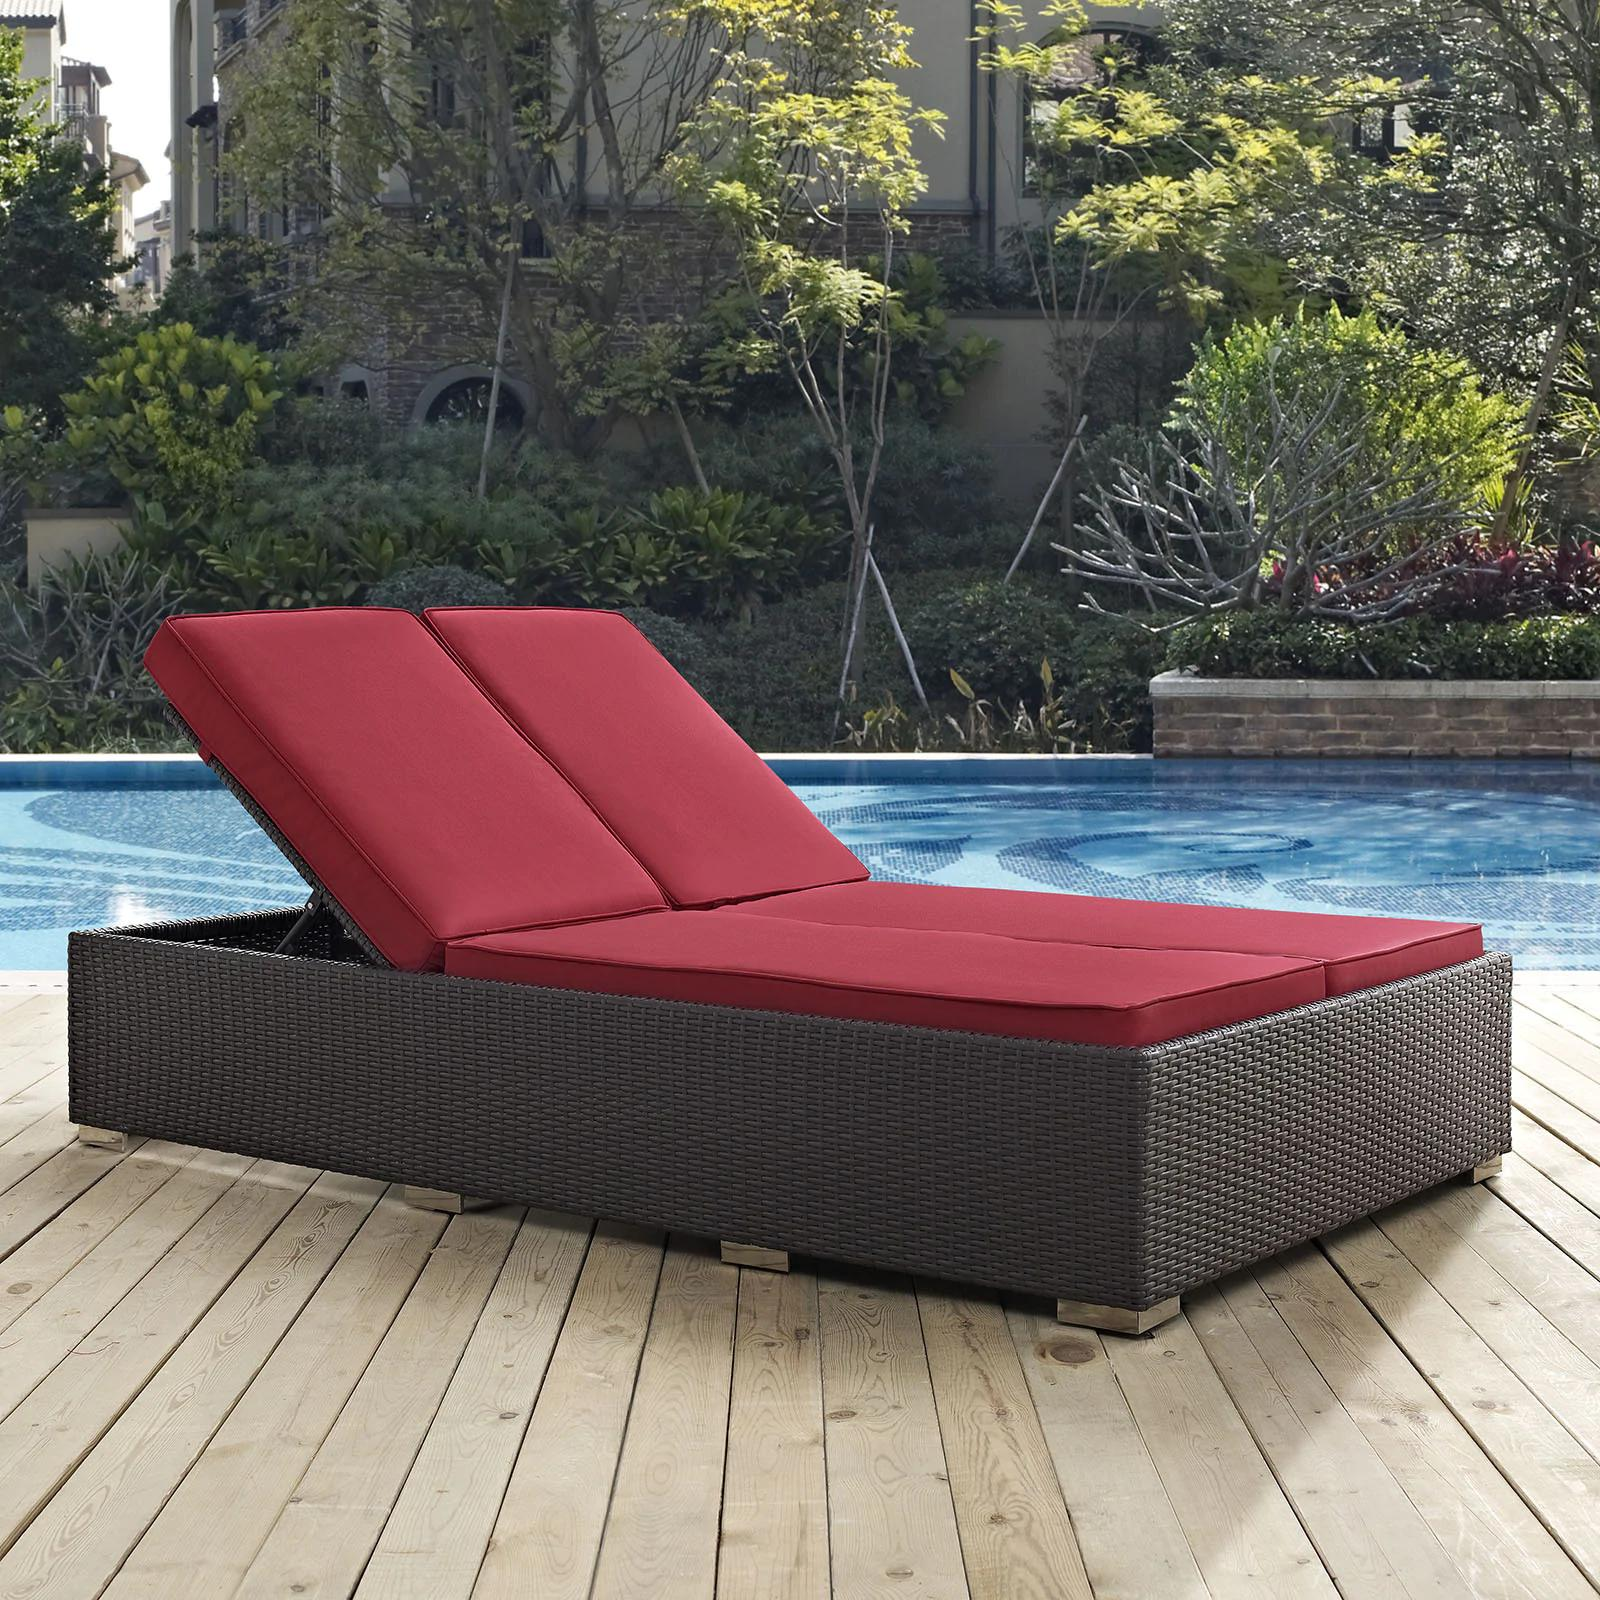 Bocabec Double Outdoor Patio Chaise by Havenside Home